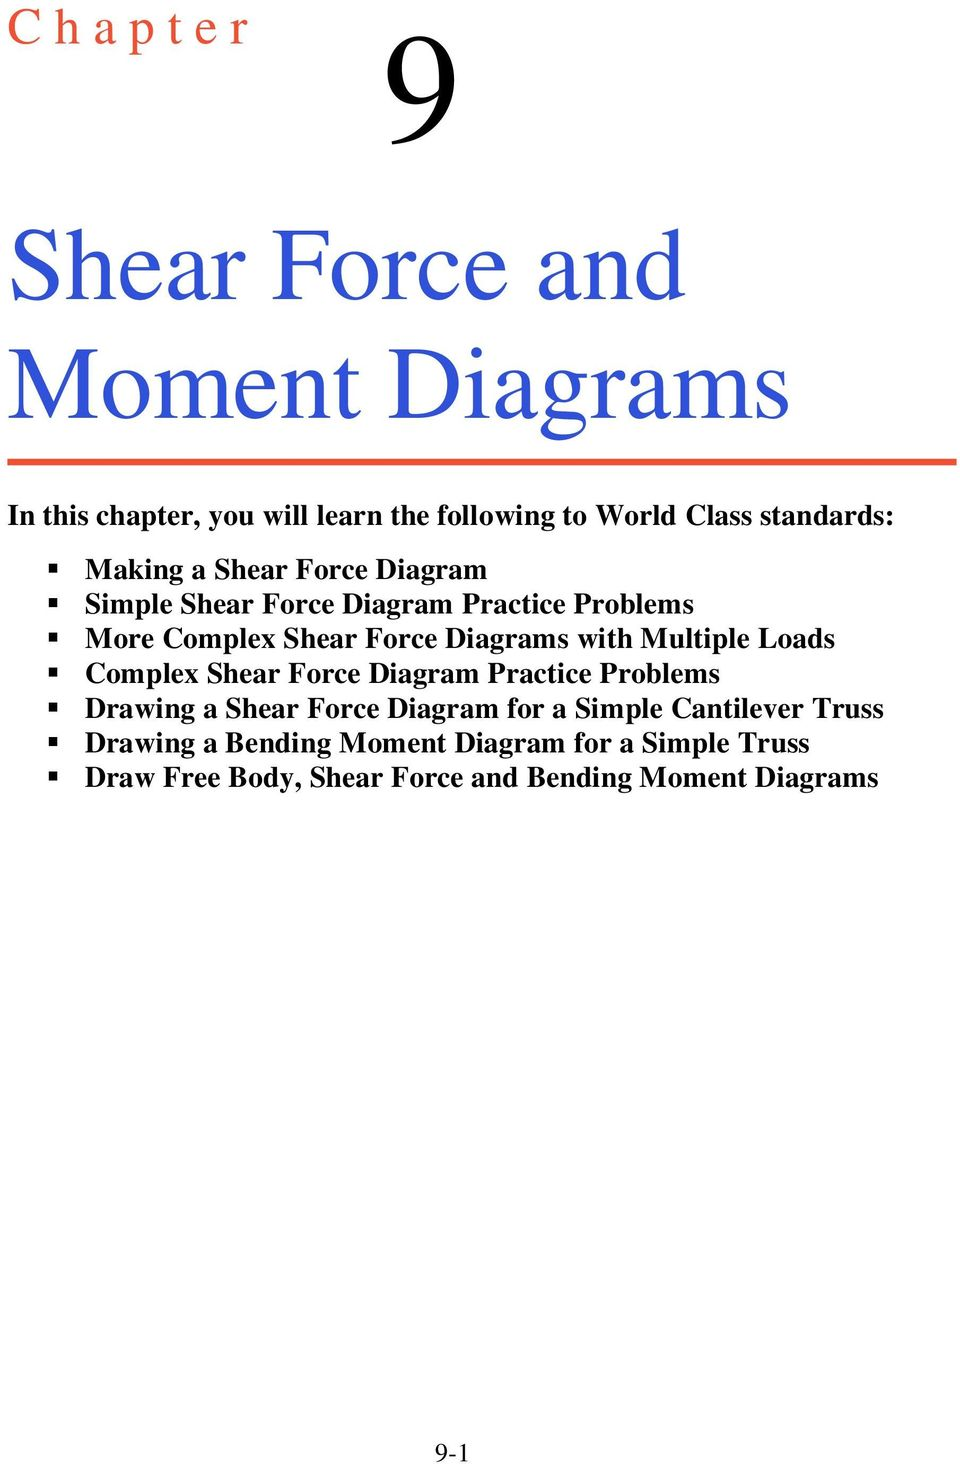 Shear Force And Moment Diagrams Pdf Bending With Multiple Loads Complex Diagram Practice Problems Drawing A For